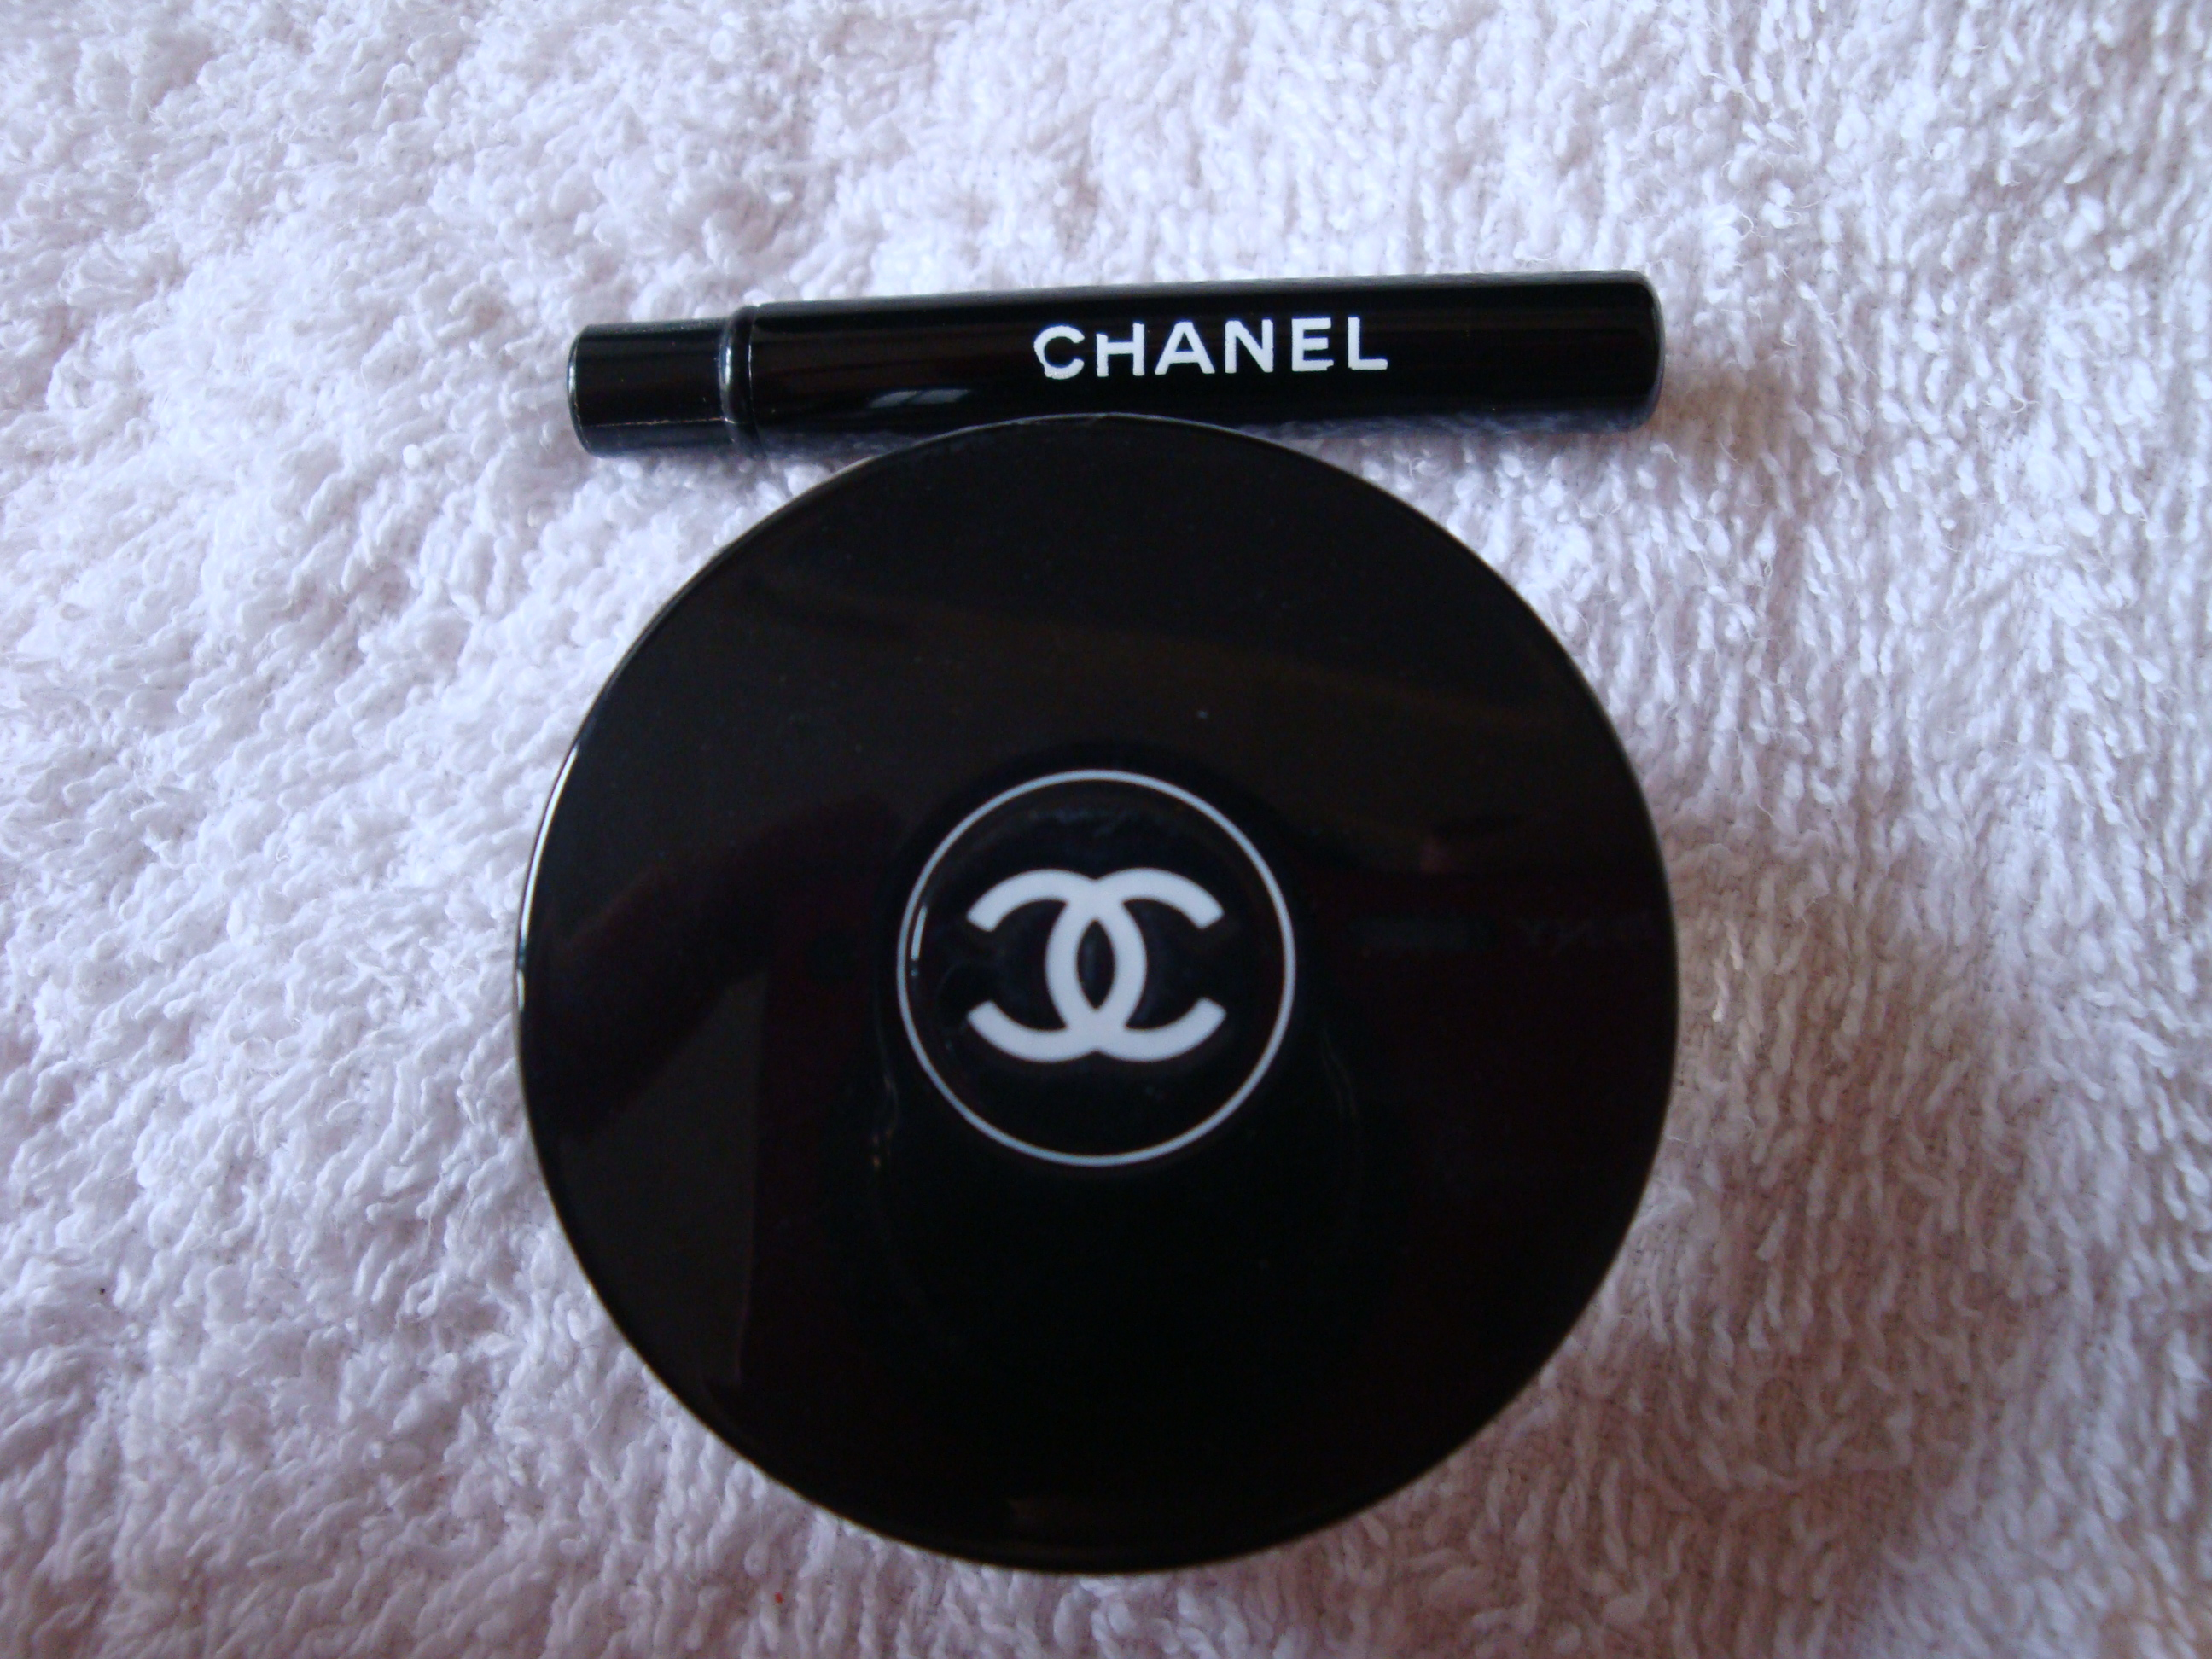 Chanel illusion d'ombre packaging